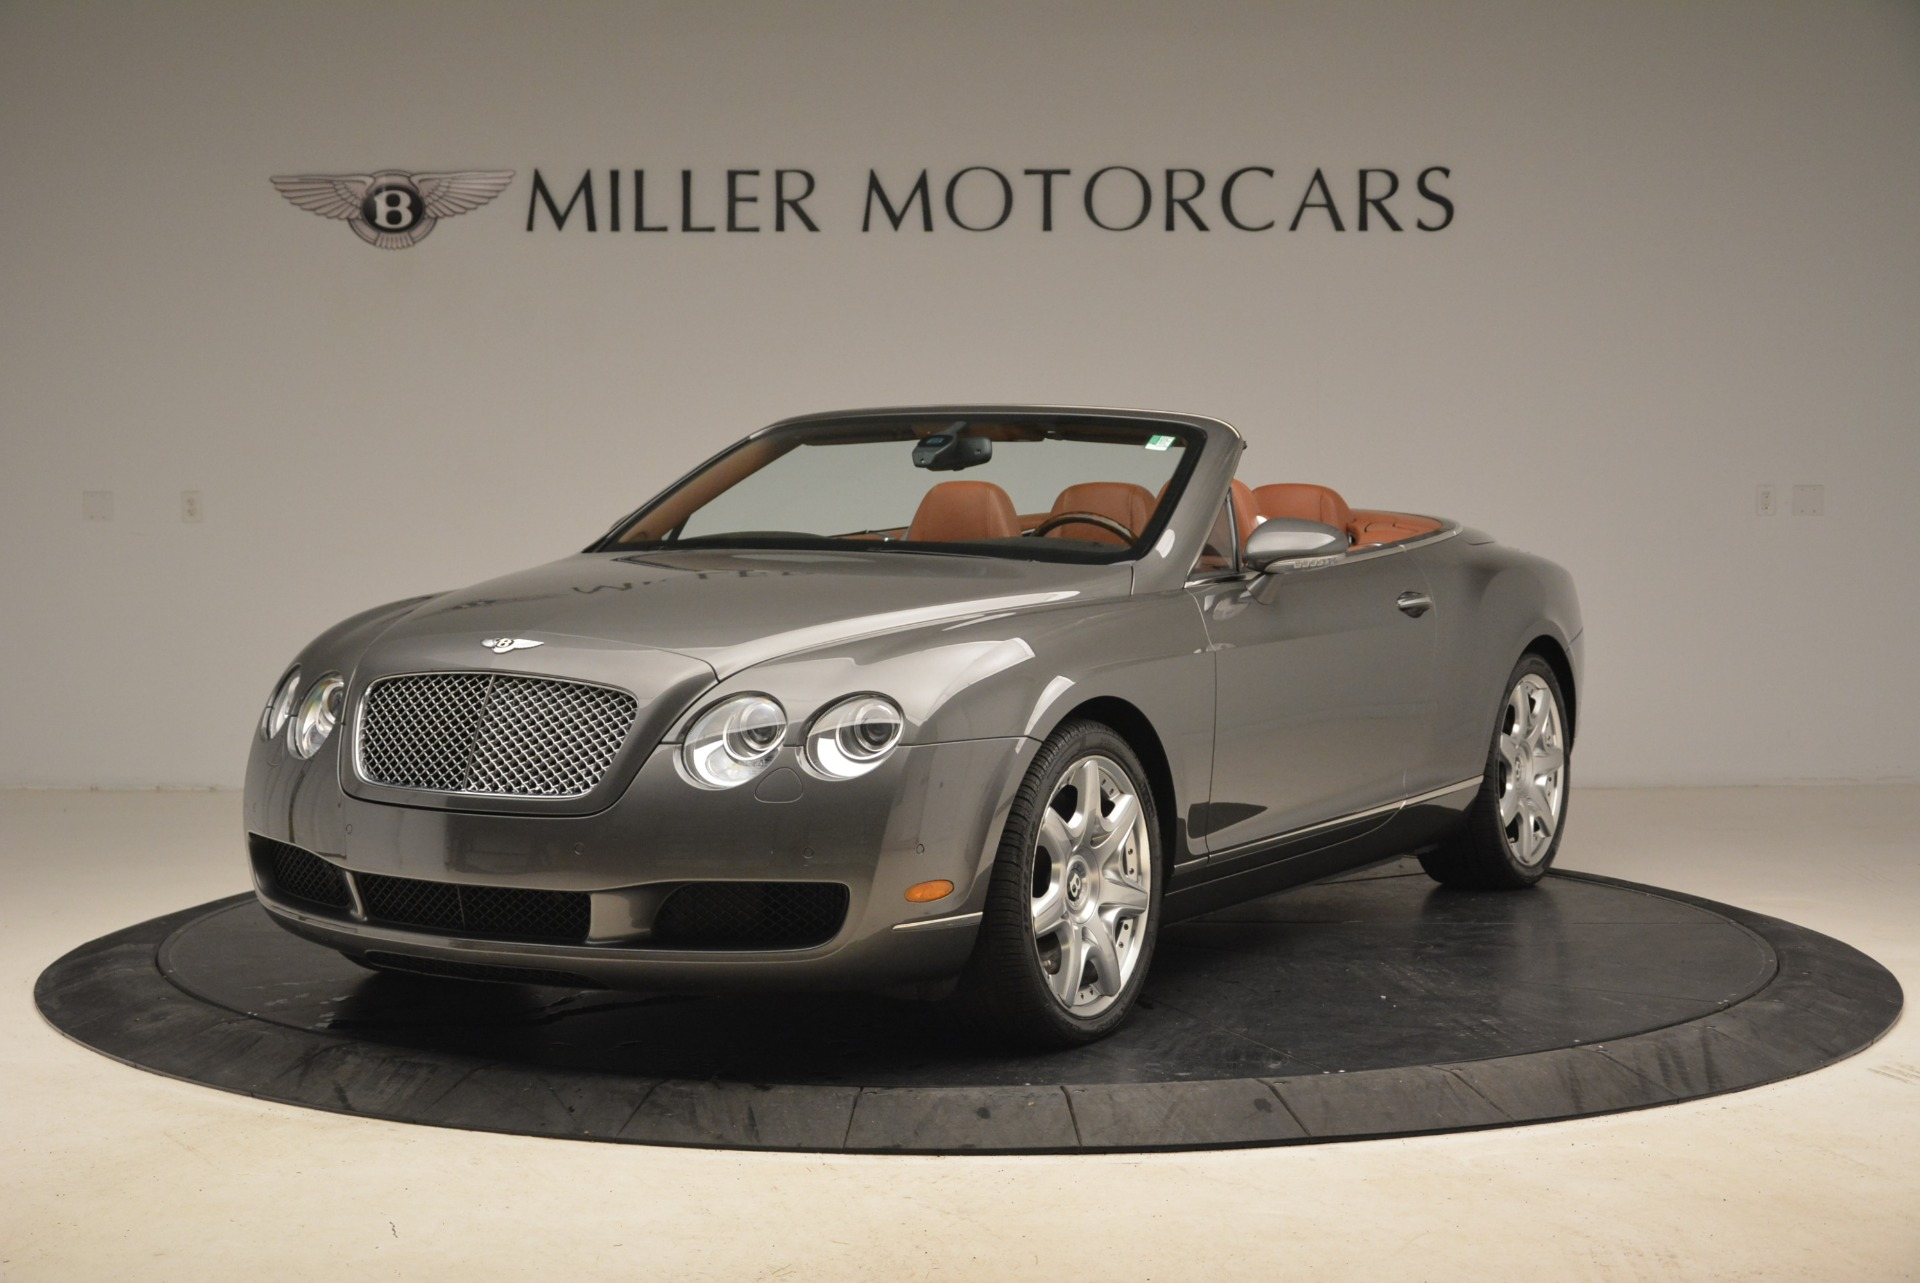 Used 2008 Bentley Continental GT W12 for sale Sold at Pagani of Greenwich in Greenwich CT 06830 1